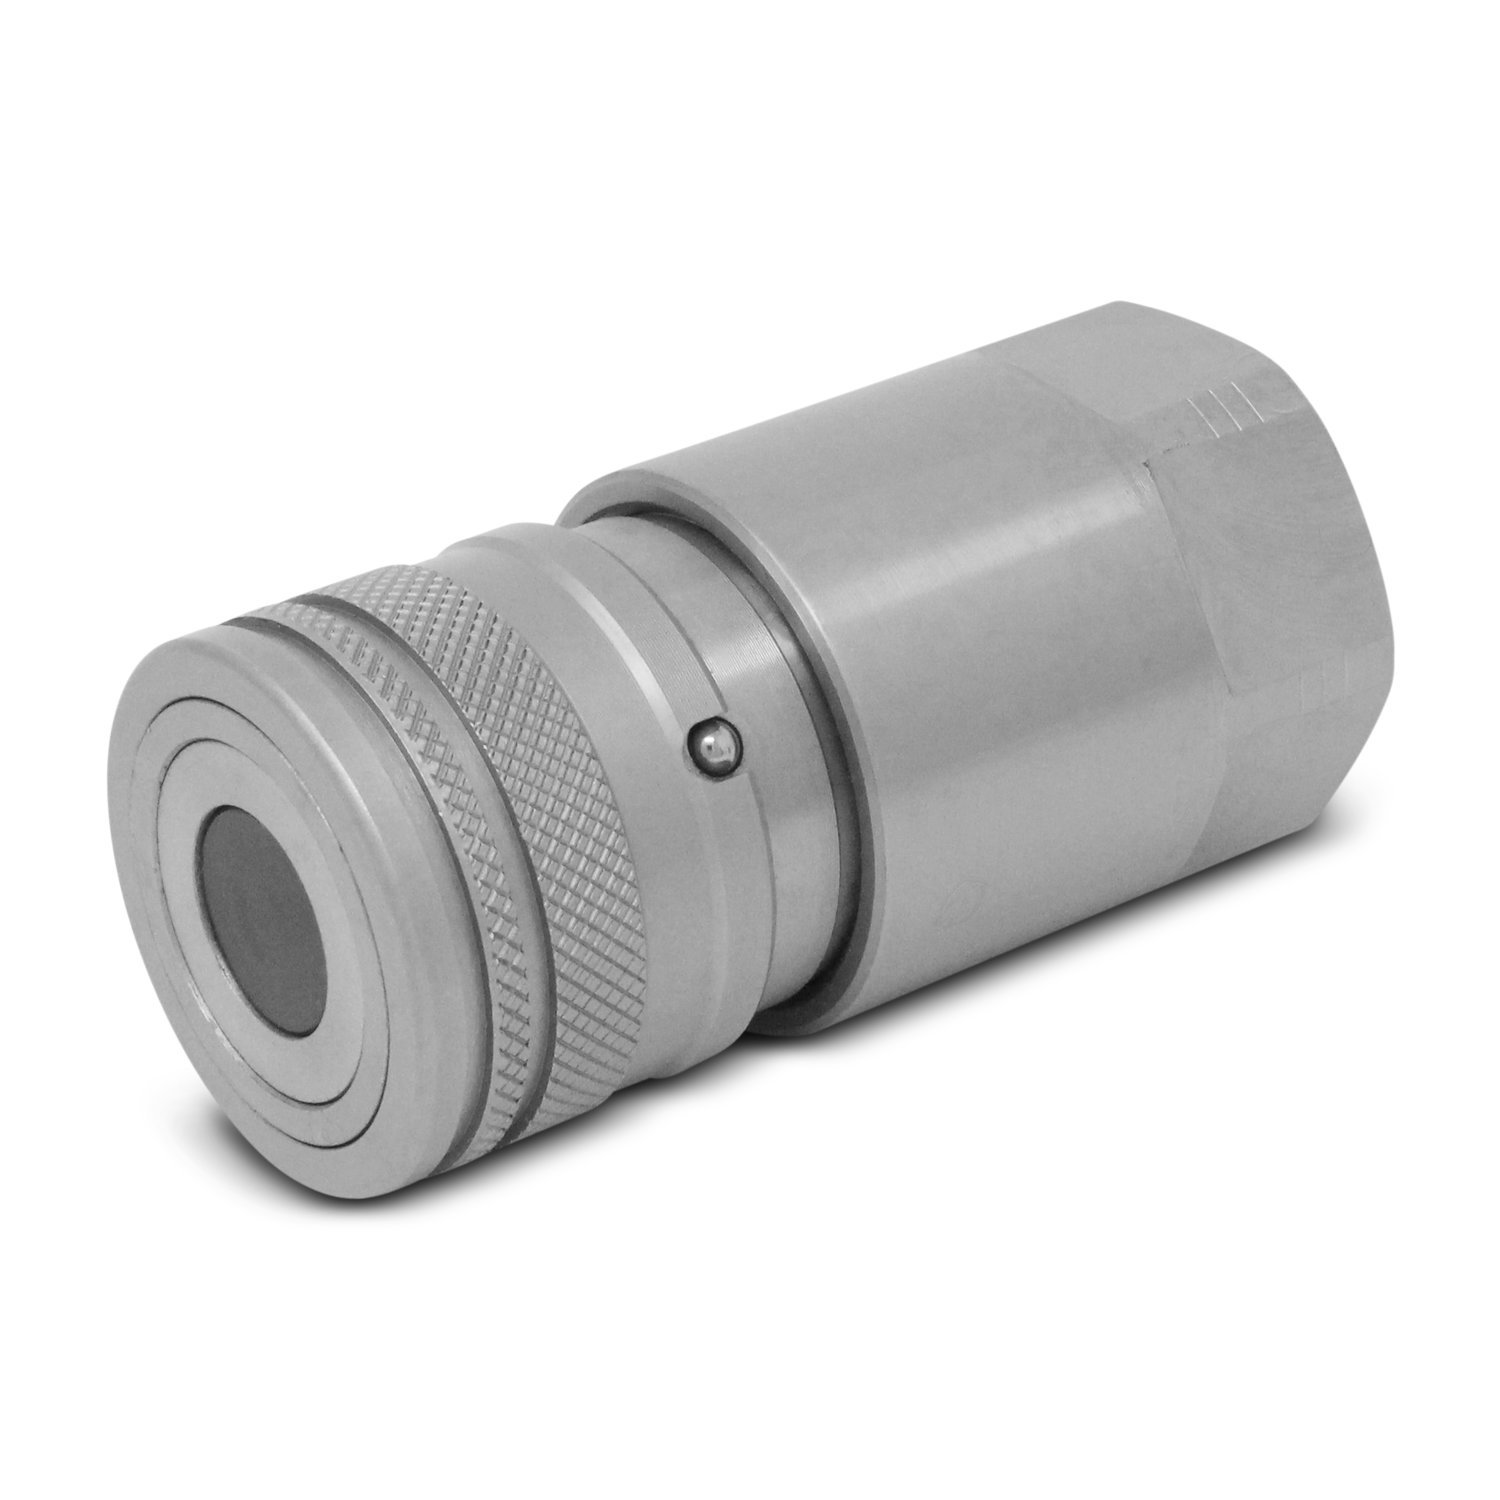 CAT 153-2994 Replacement Female Hydraulic Flat Face Quick Coupler Summit Hydraulics